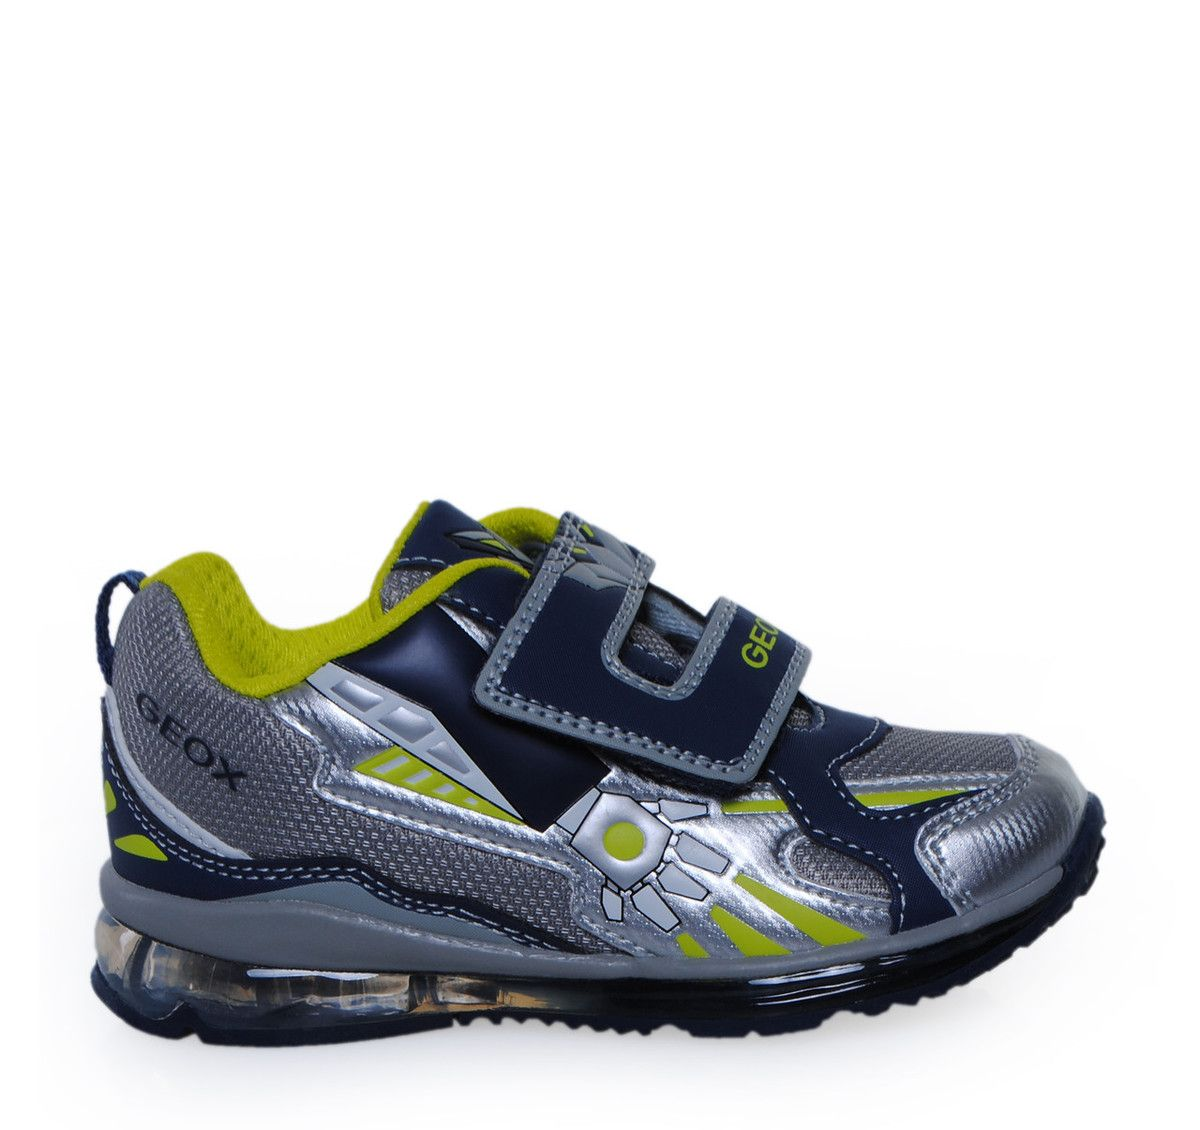 GEOX Grey Navy Sneakers with Lights for Boys. Παιδικά γκρι μπλε sneakers με 68ce181c1d6